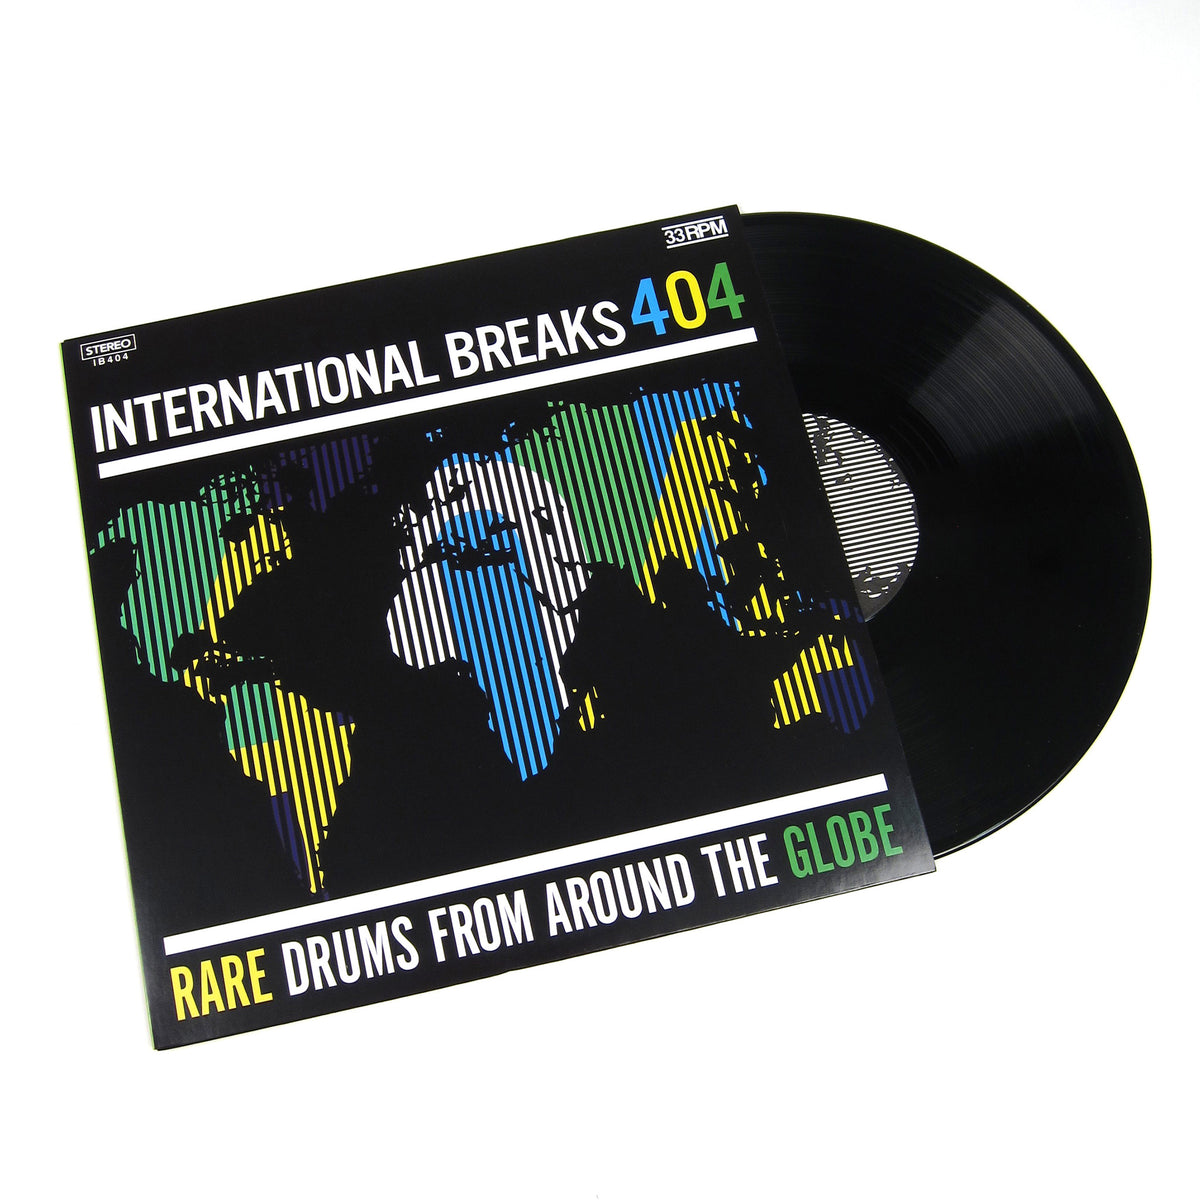 International Breaks Inc: International Breaks 404 Vinyl LP